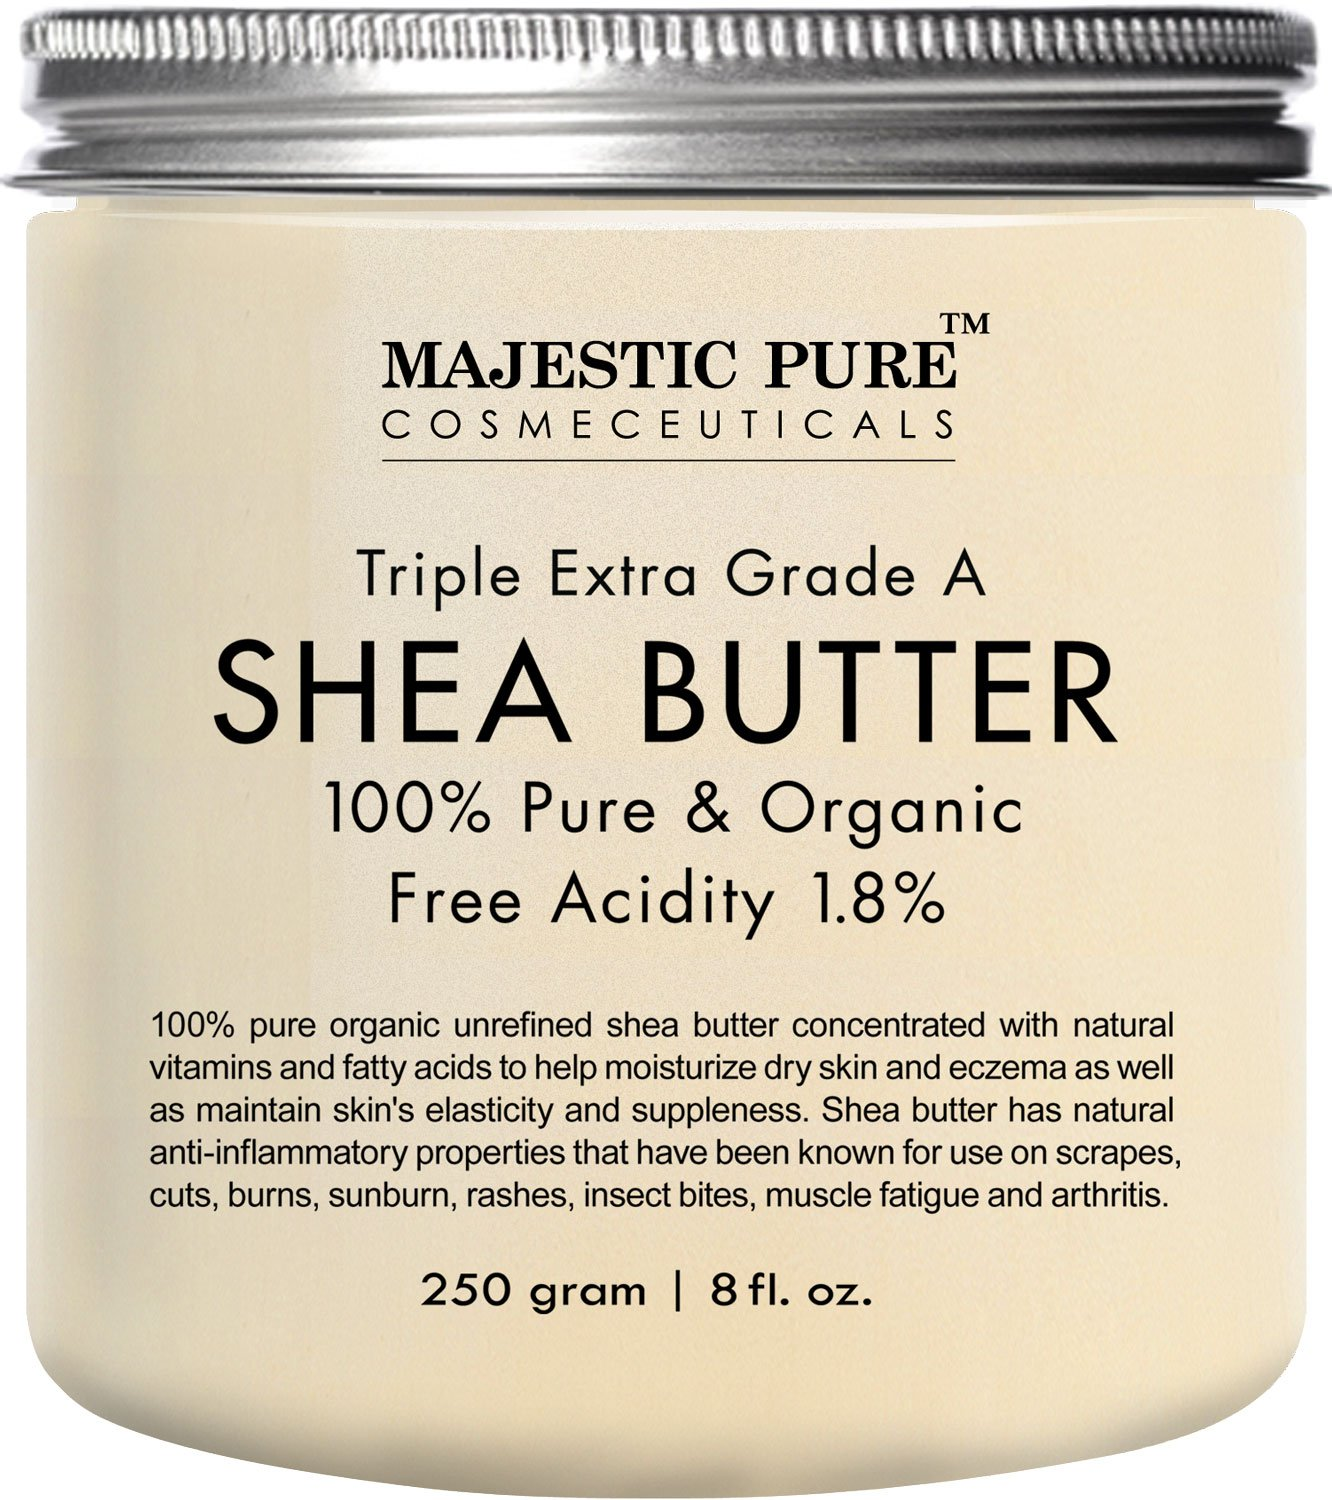 Majestic Pure Shea Butter, Natural Skin Care, Organic Virgin Cold-Pressed Raw Unrefined Premium Grade from Ghana - 8 oz …